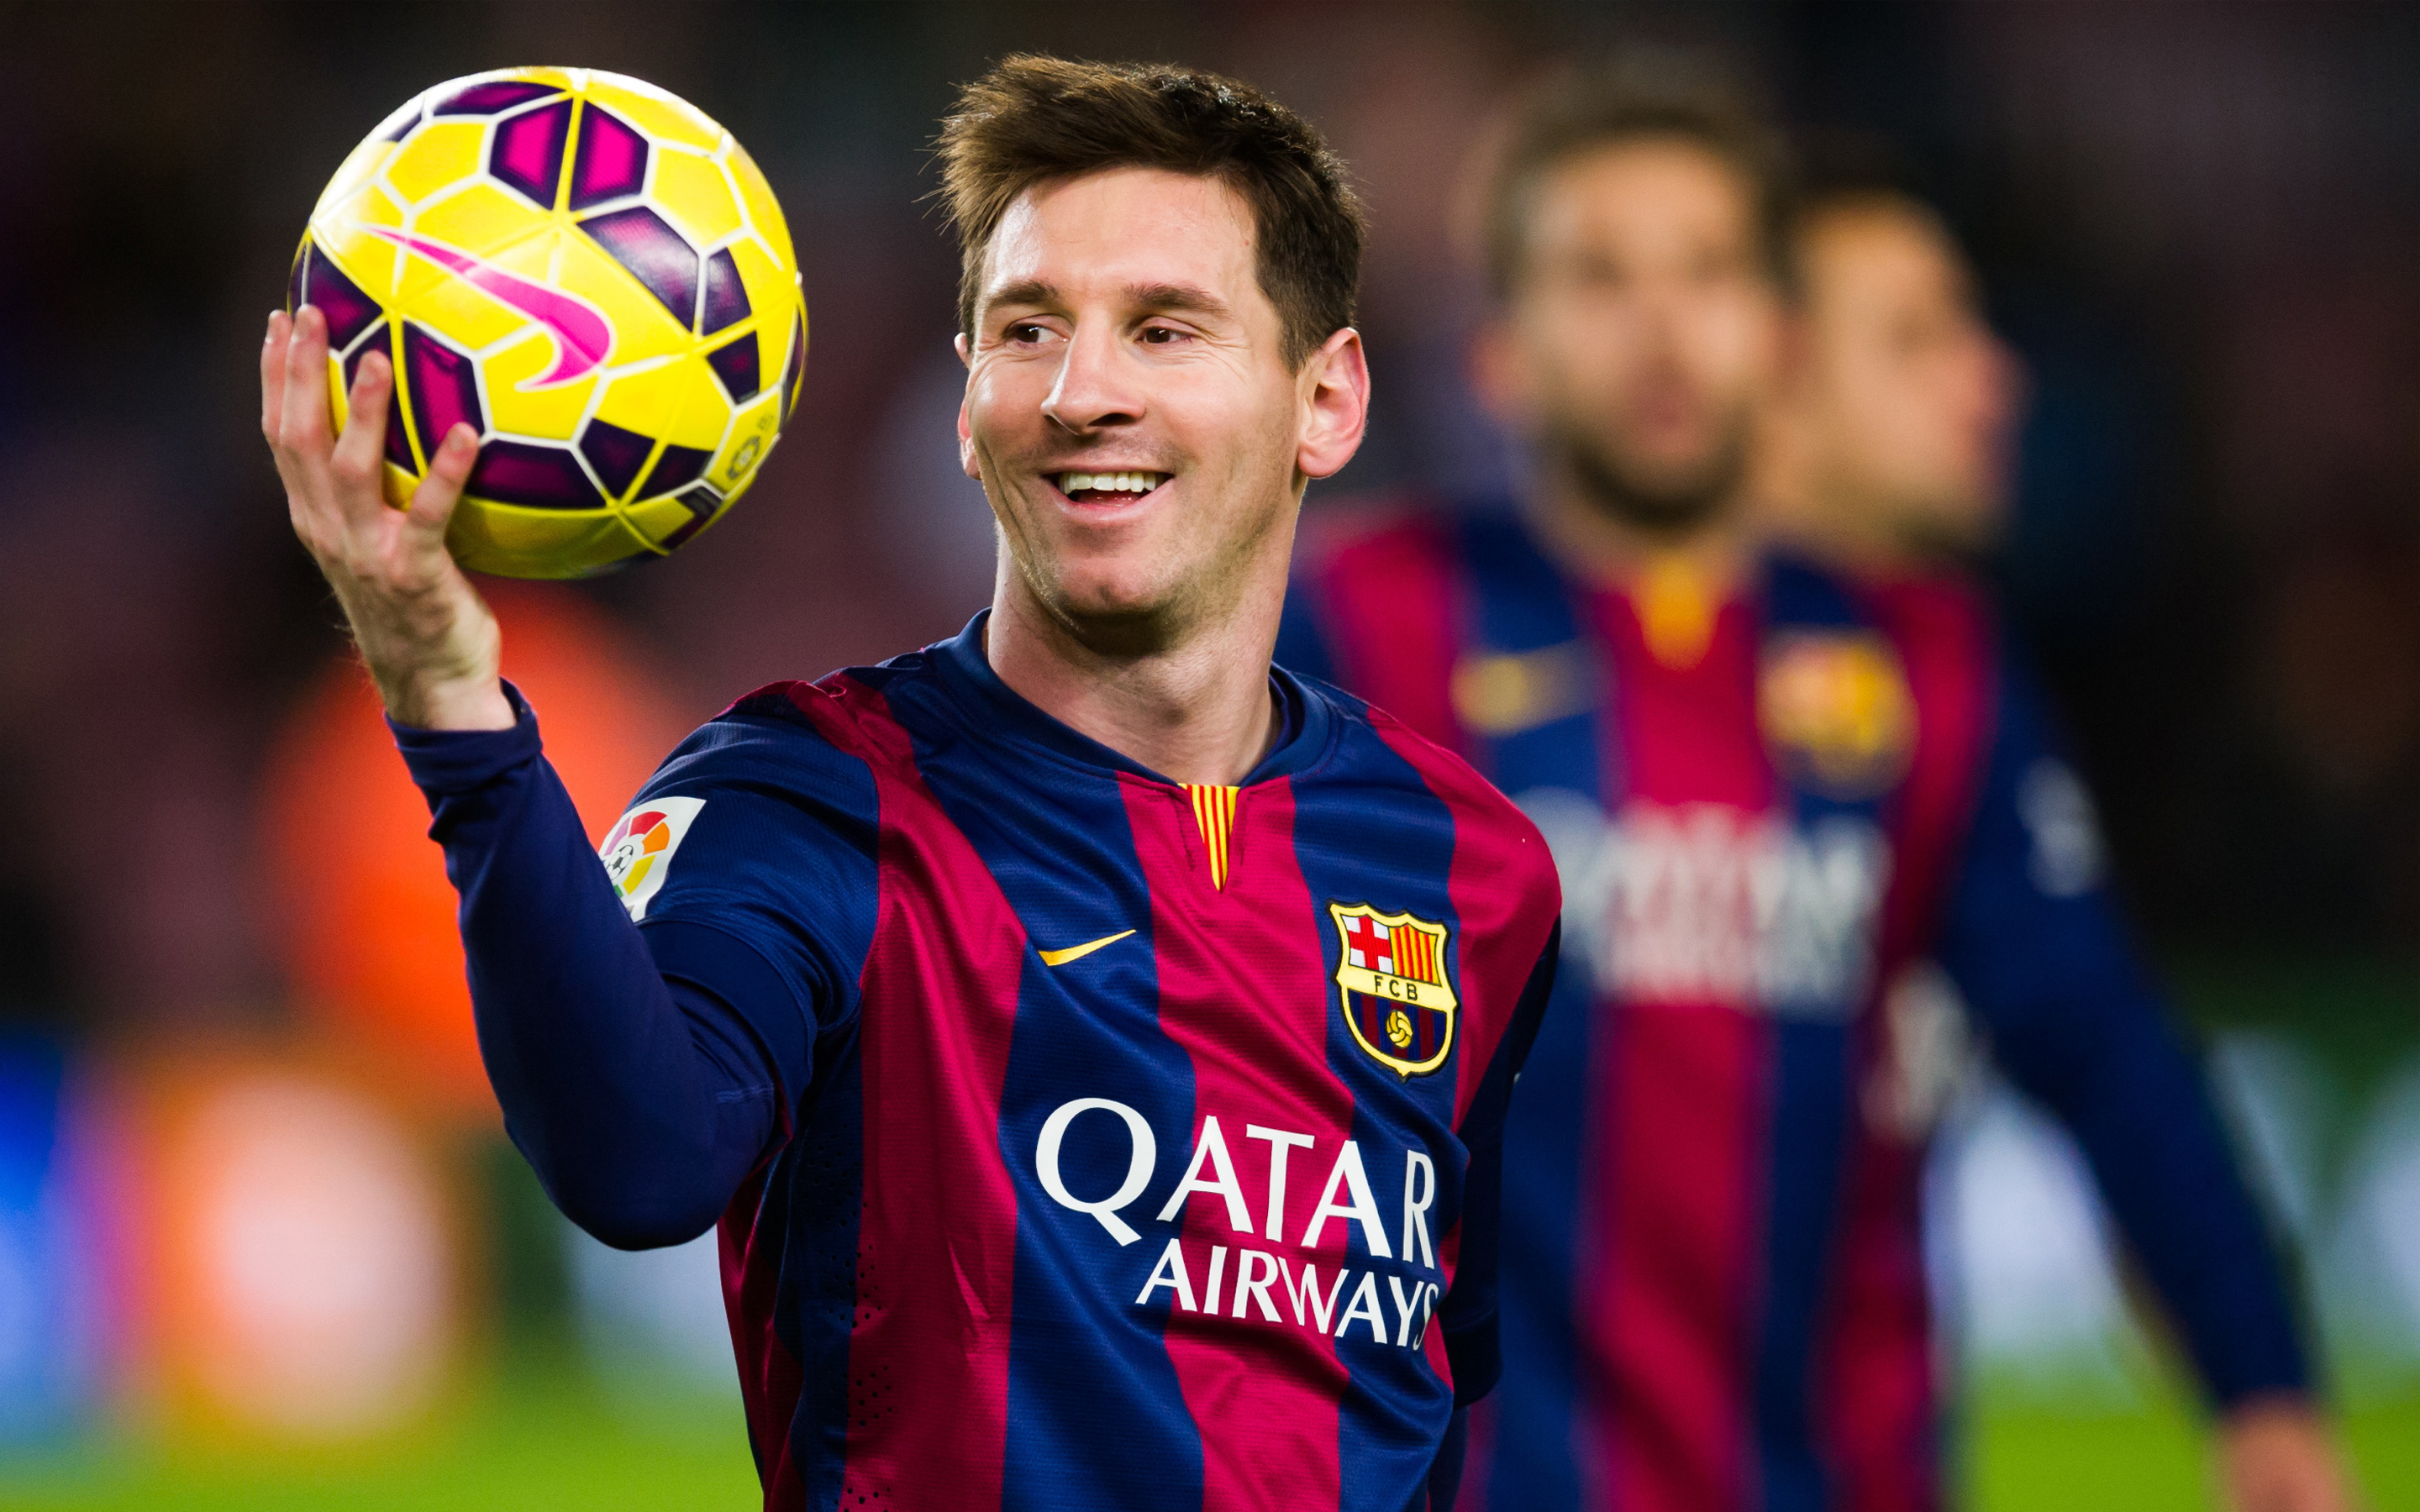 lionel messi football soccer player free background mobile desktop download images